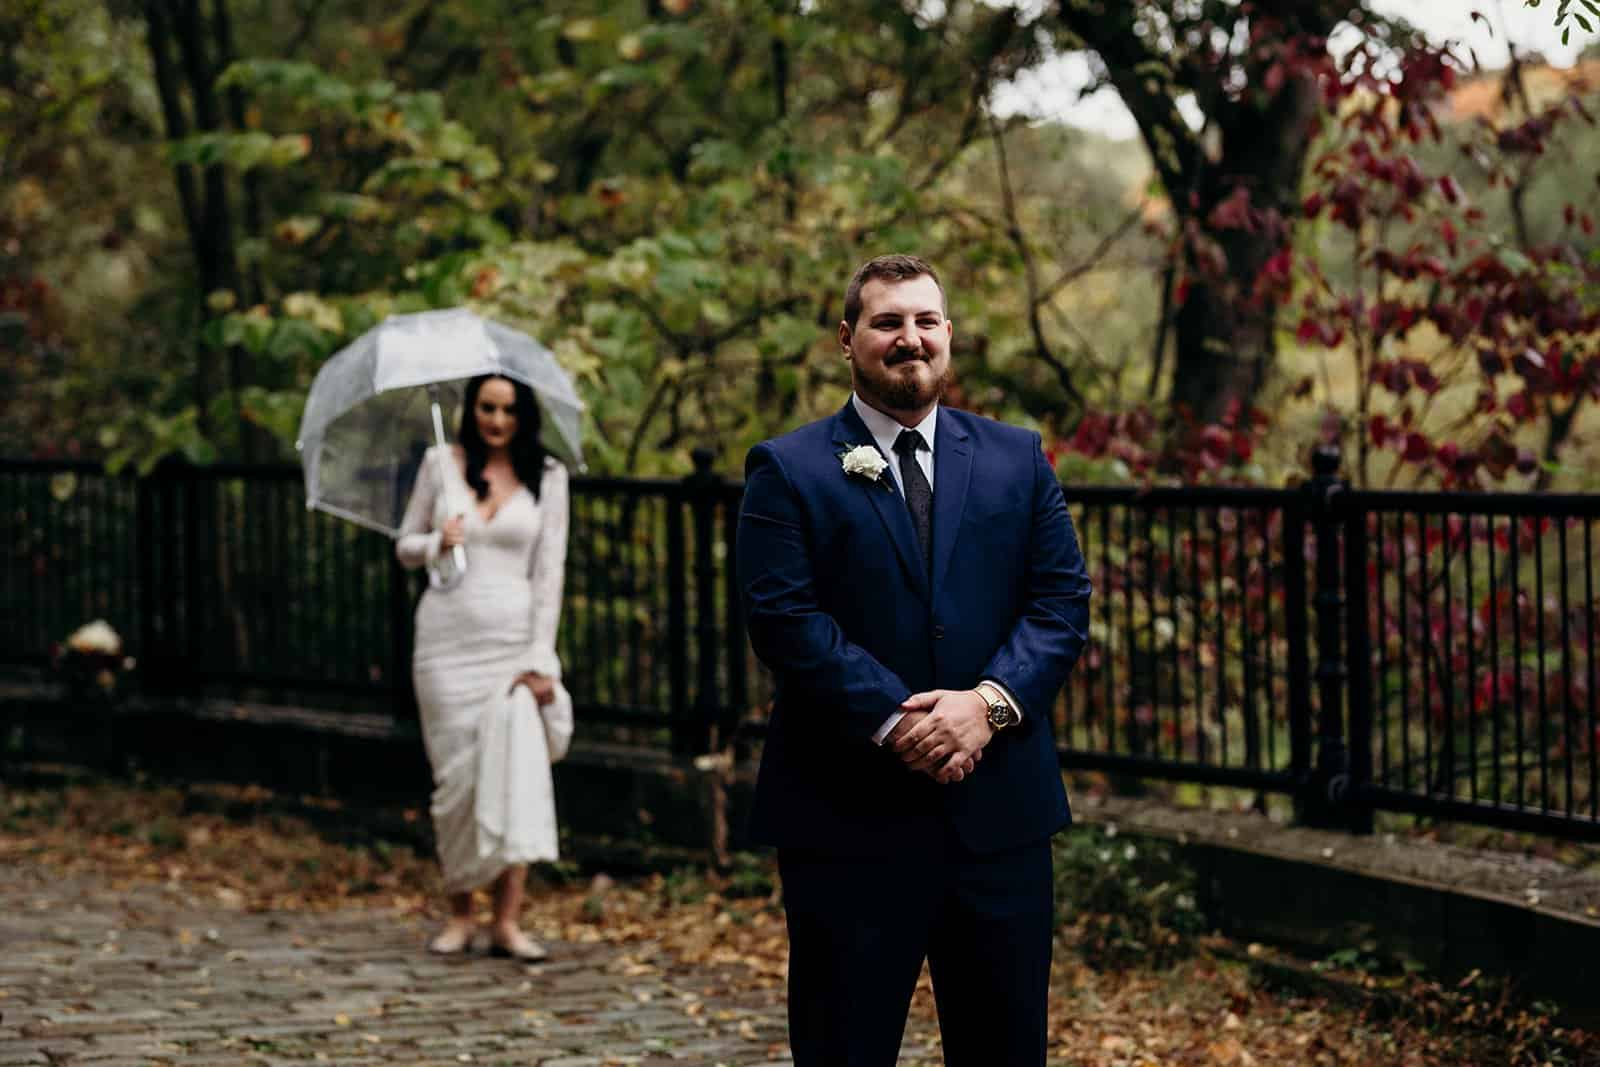 Grooms stands and waits while Bride prepares for first look